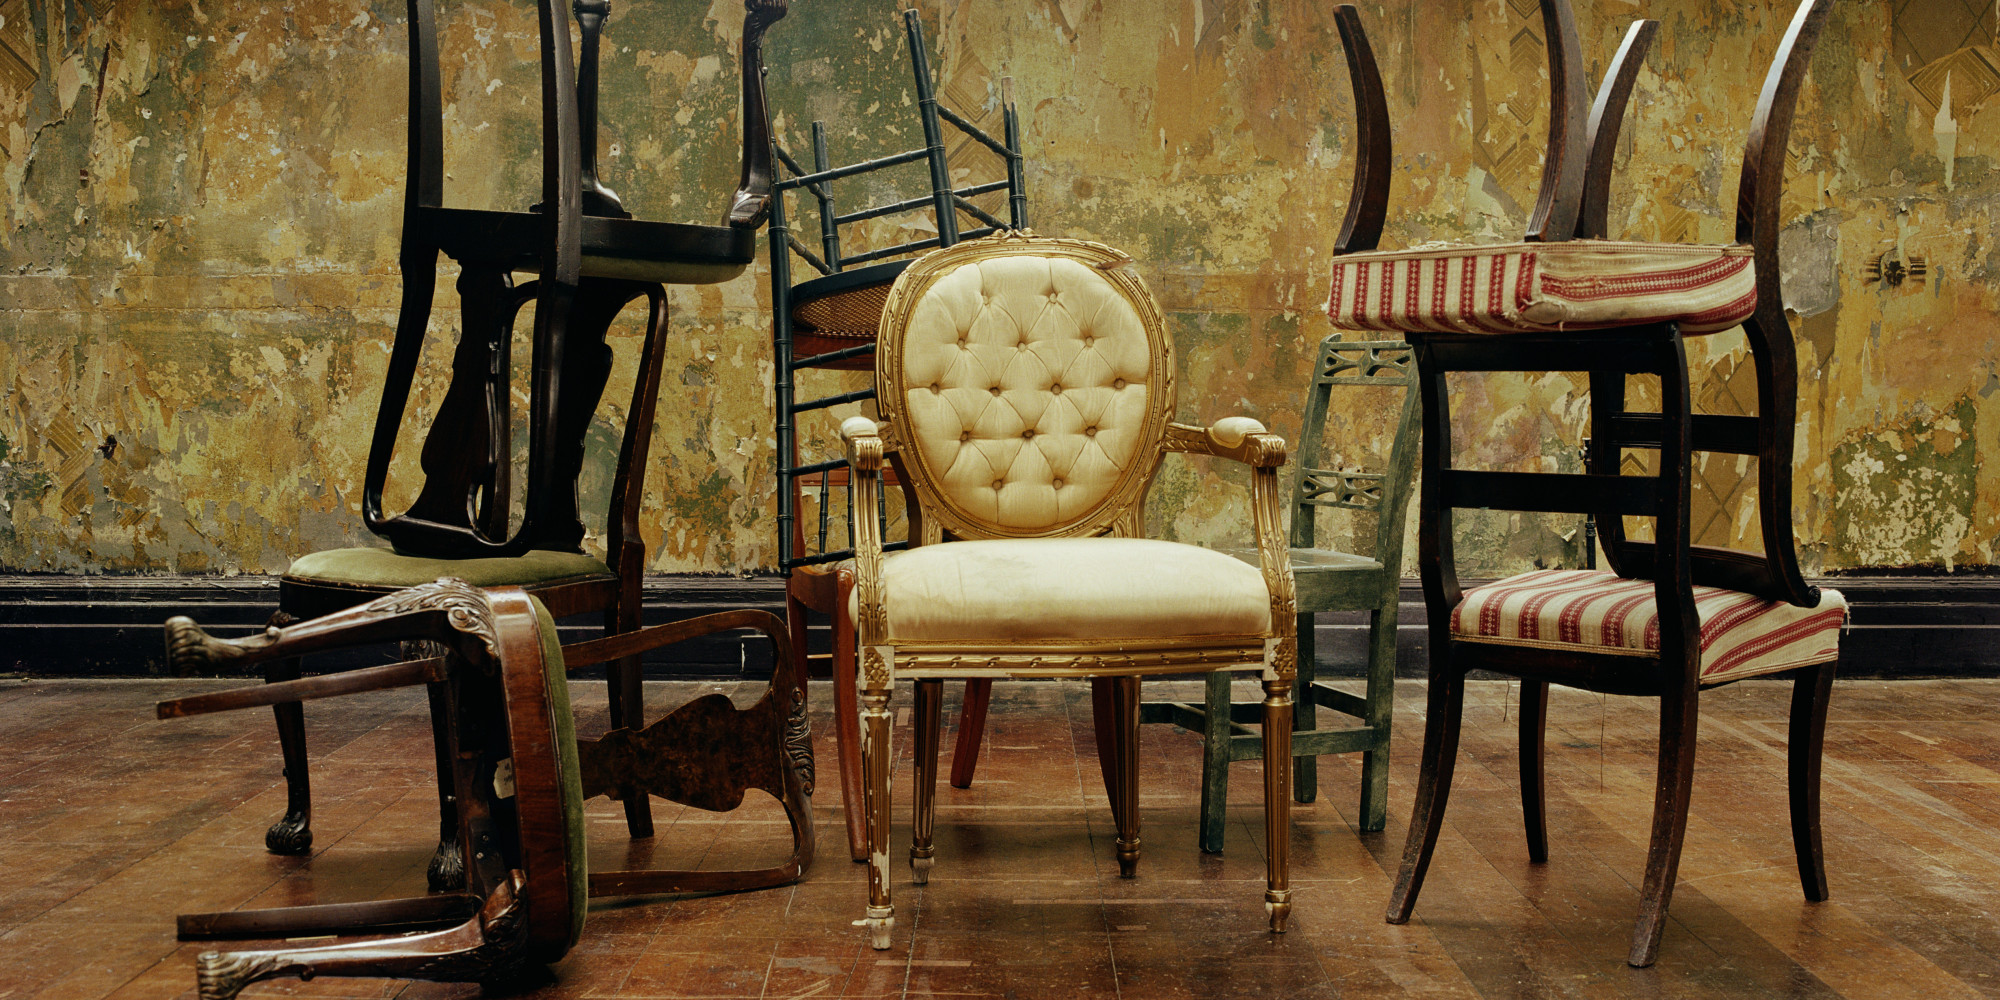 10 Best Websites For Vintage Furniture That You Can Browse From Your Living  Room   HuffPost. 10 Best Websites For Vintage Furniture That You Can Browse From